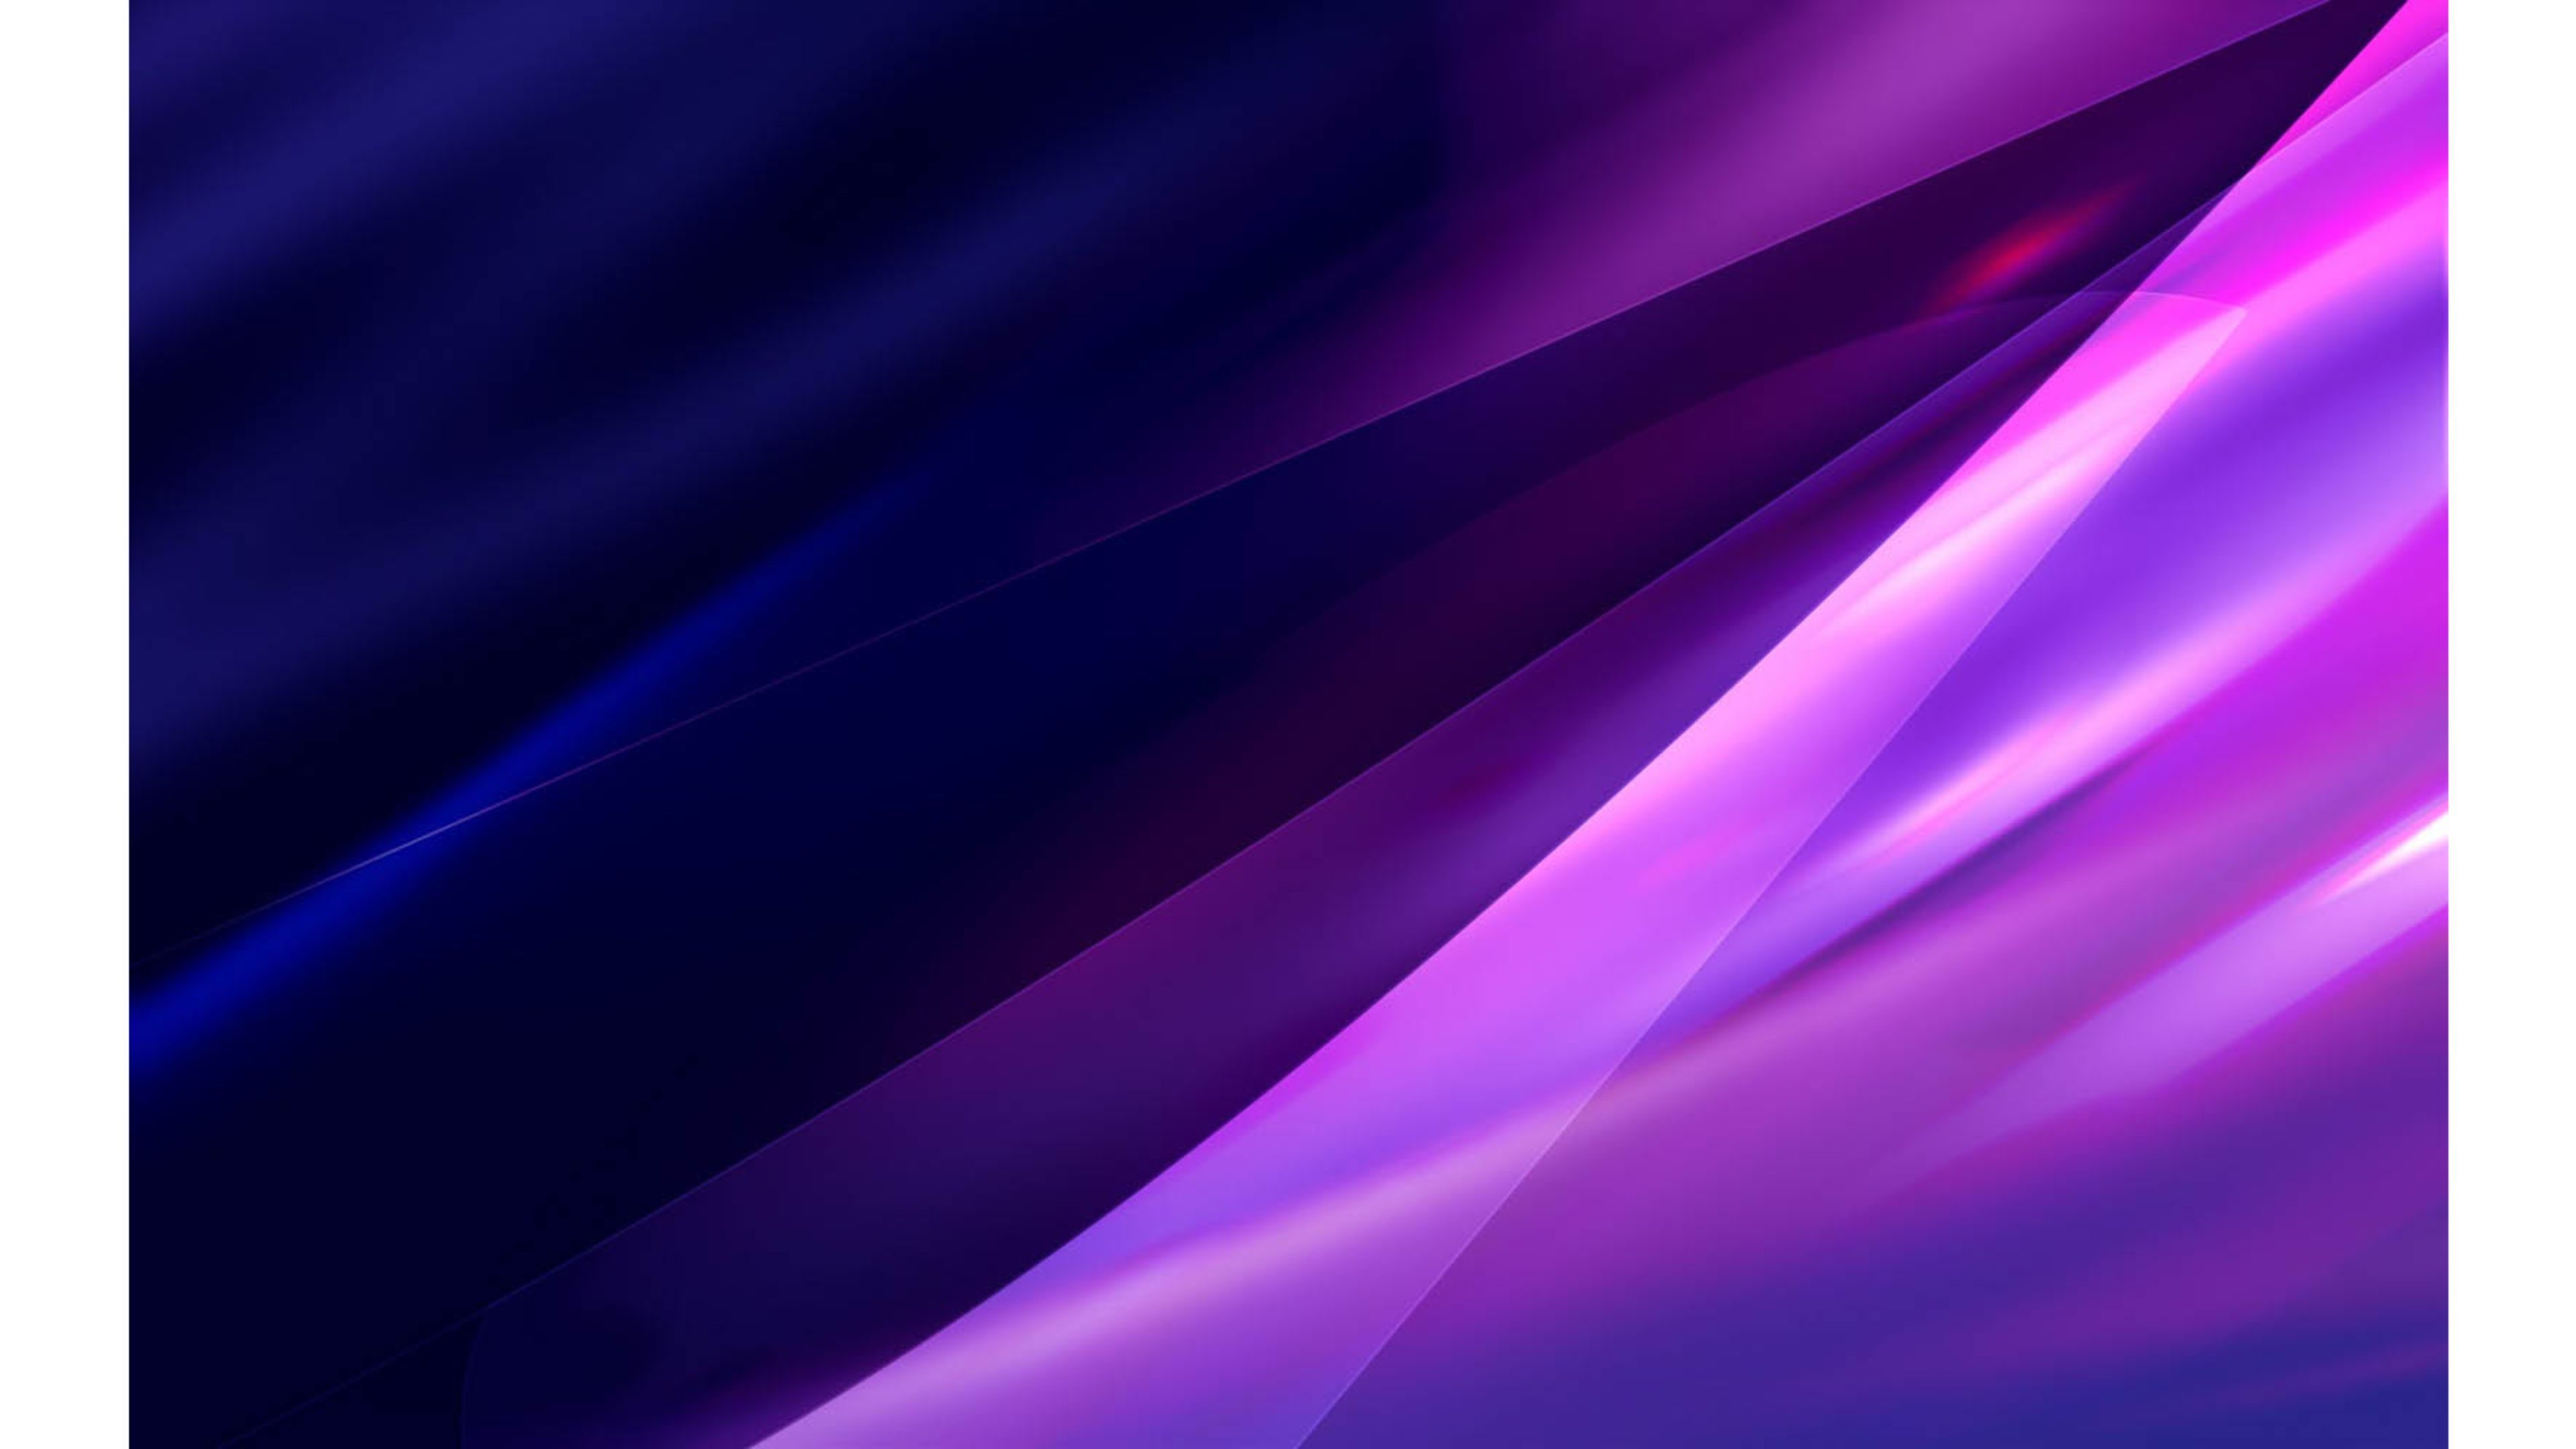 Purple Waves Abstract 4k Wallpaper Purple Background Images